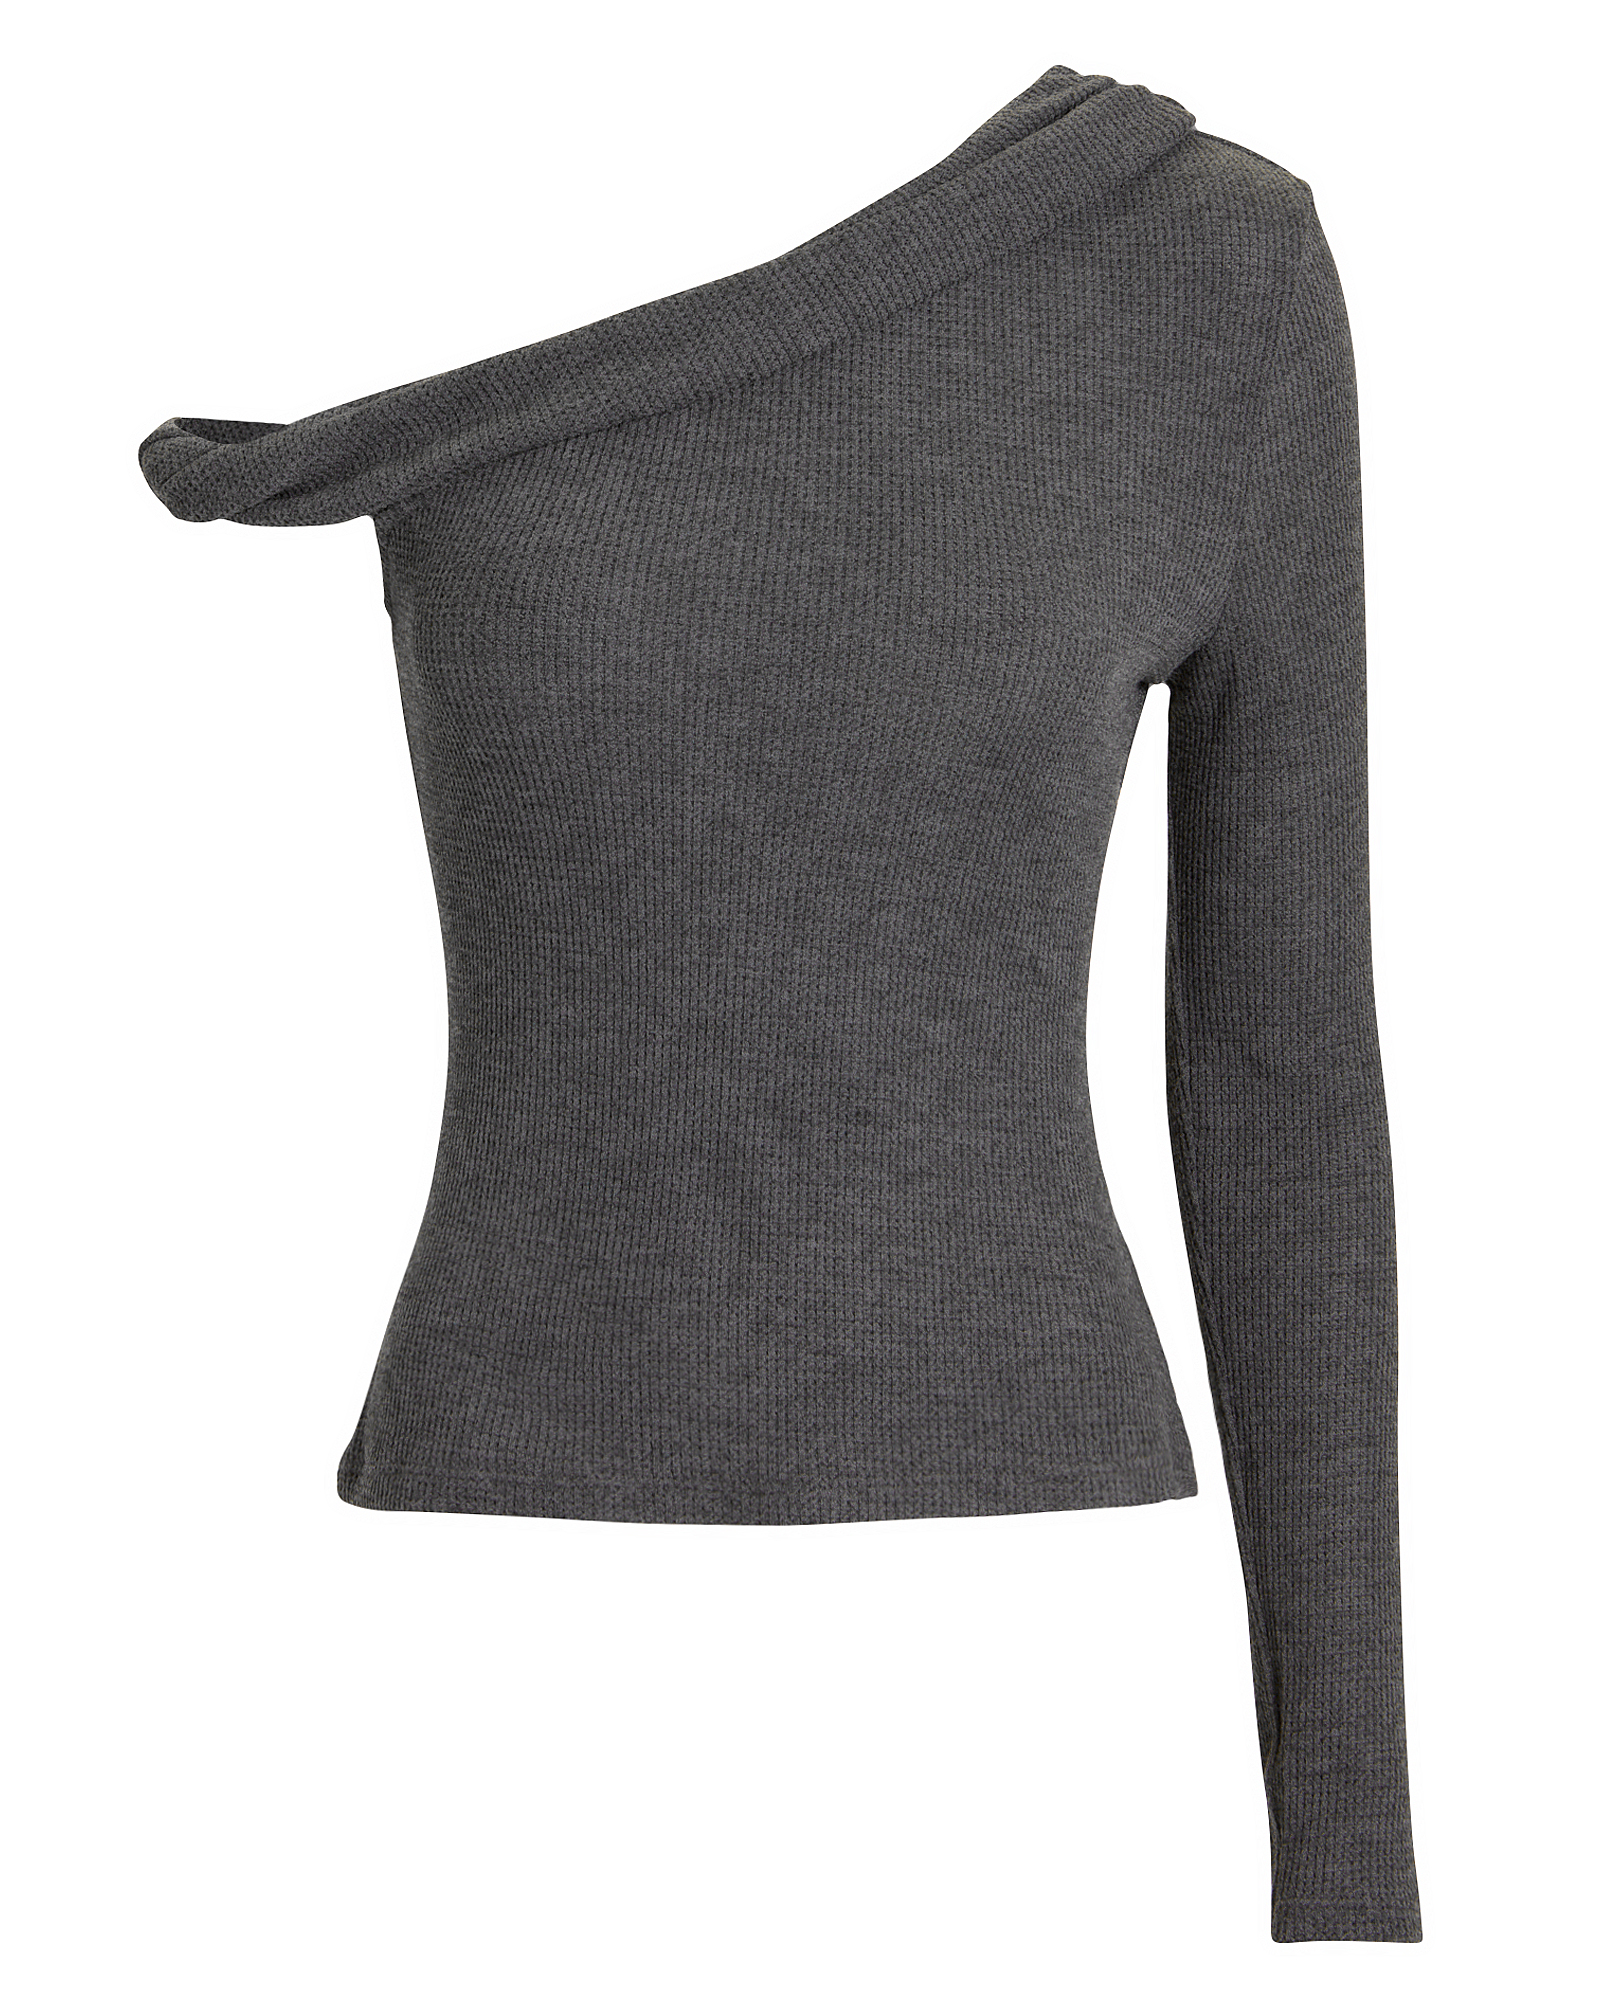 THE RANGE WAFFLE KNIT TWISTED BARE SHOULDER TO GREY